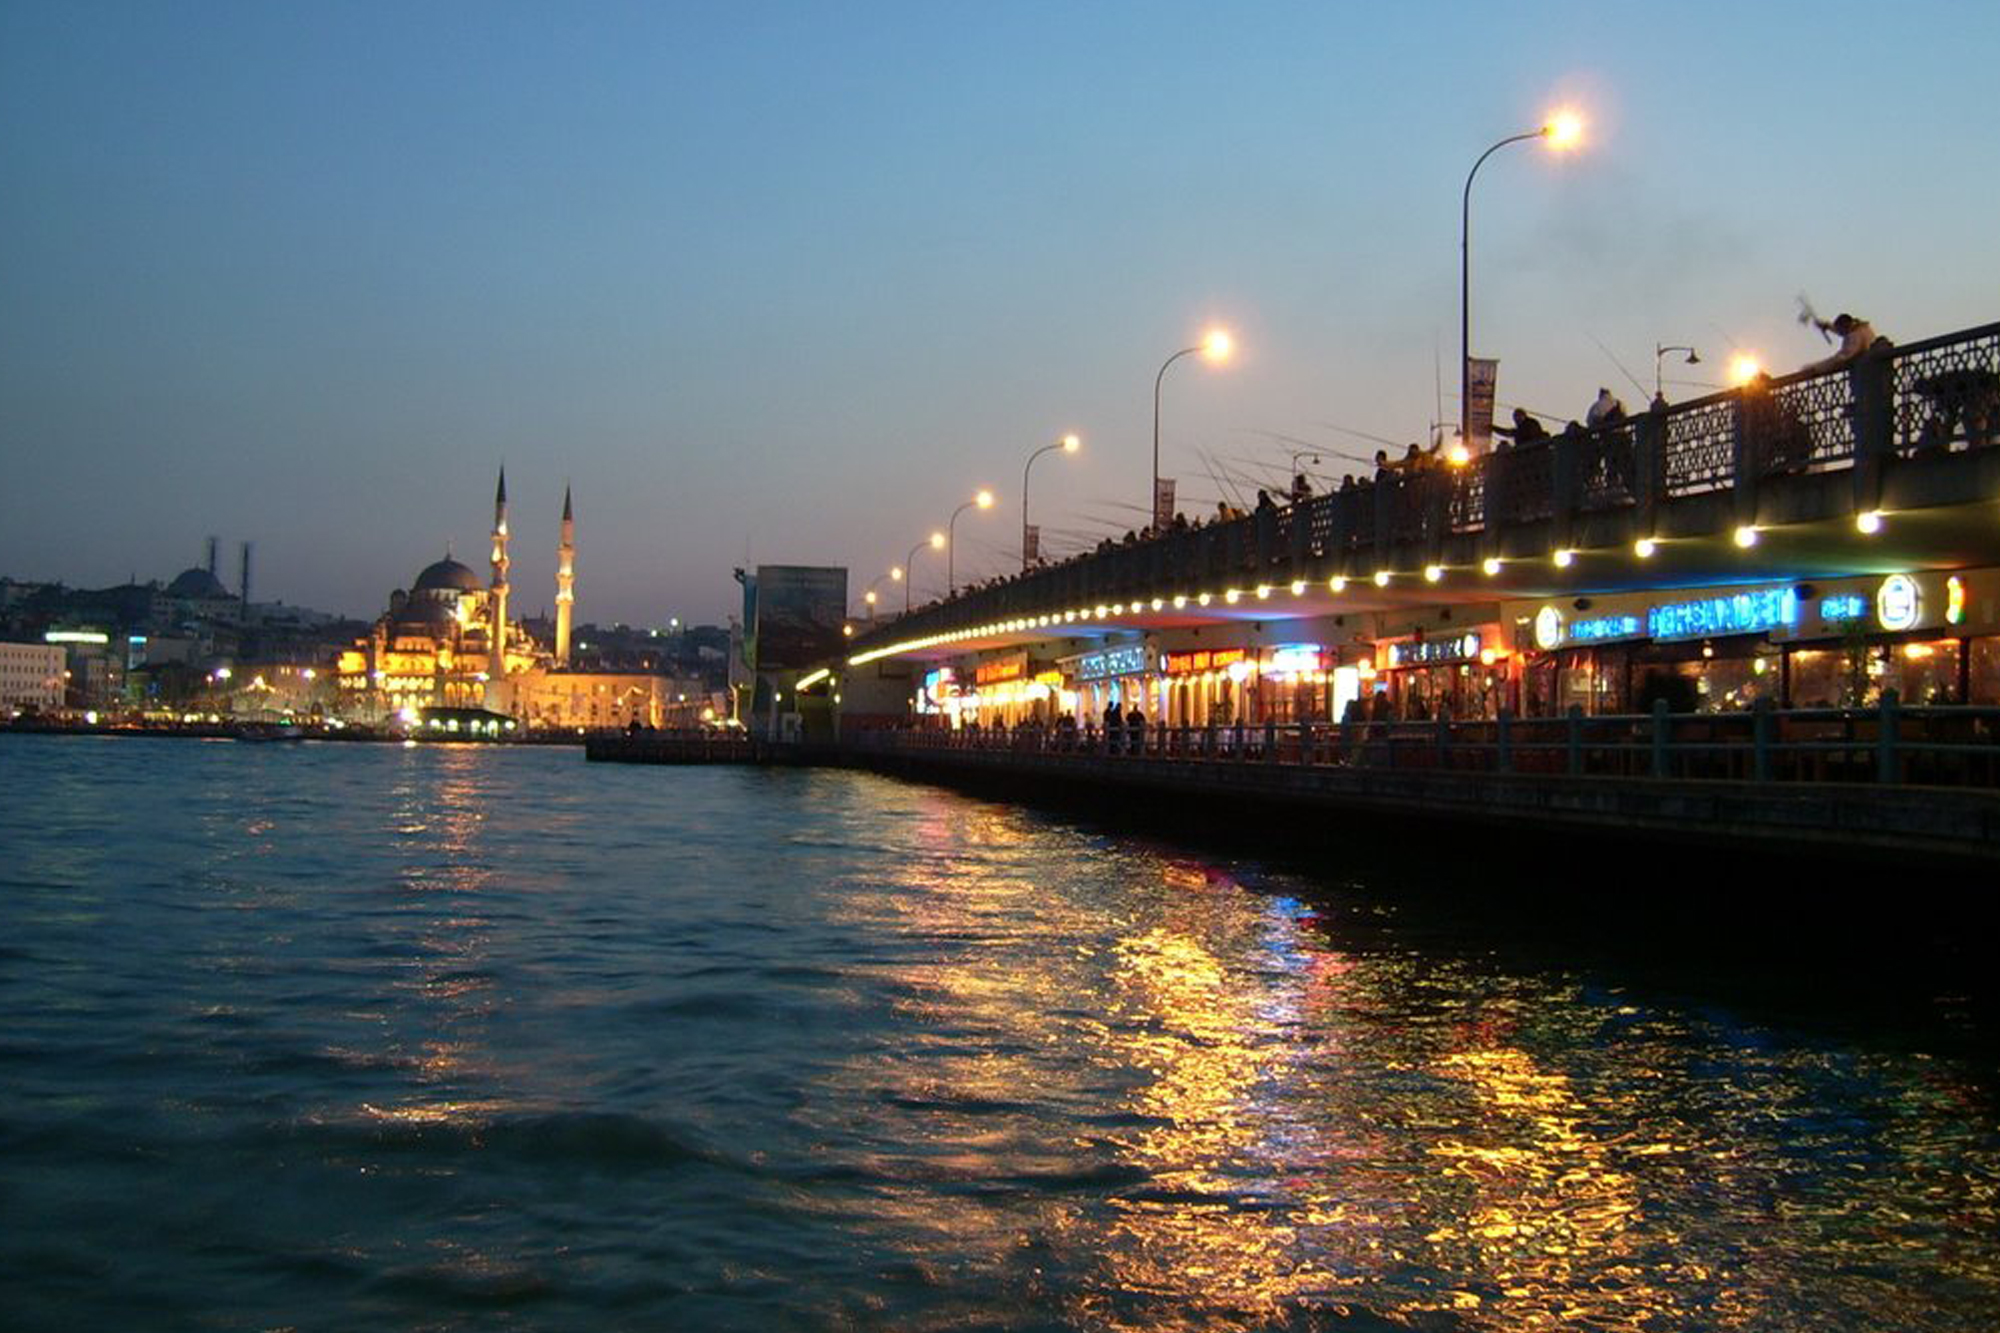 7_GalataBridge_big_subkarakoy